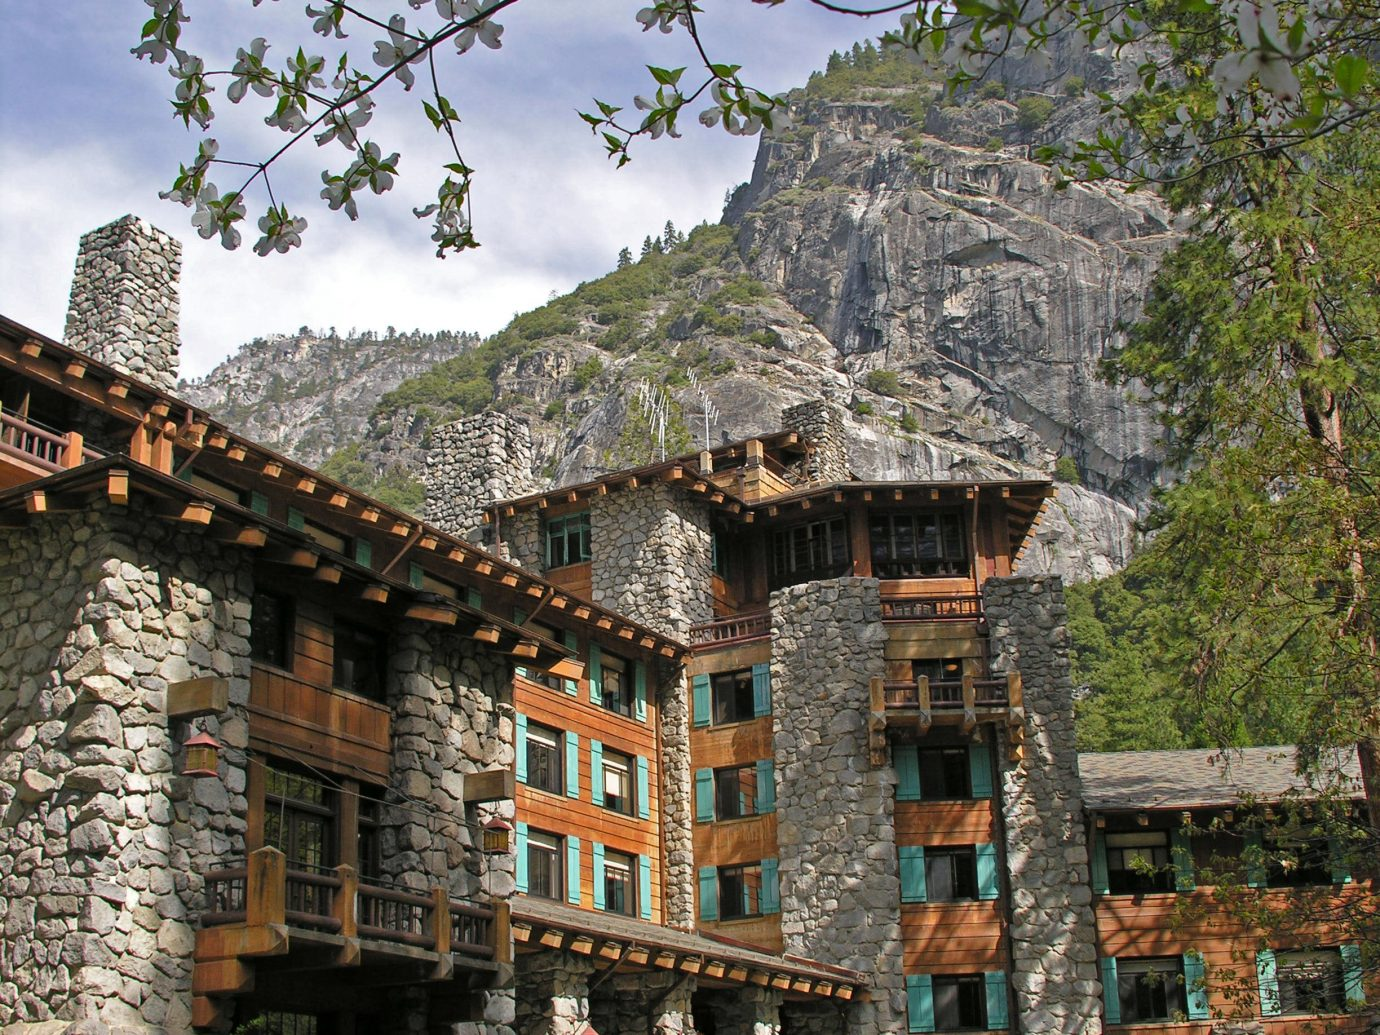 Majestic Yosemite Hotel, Yosemite National Park